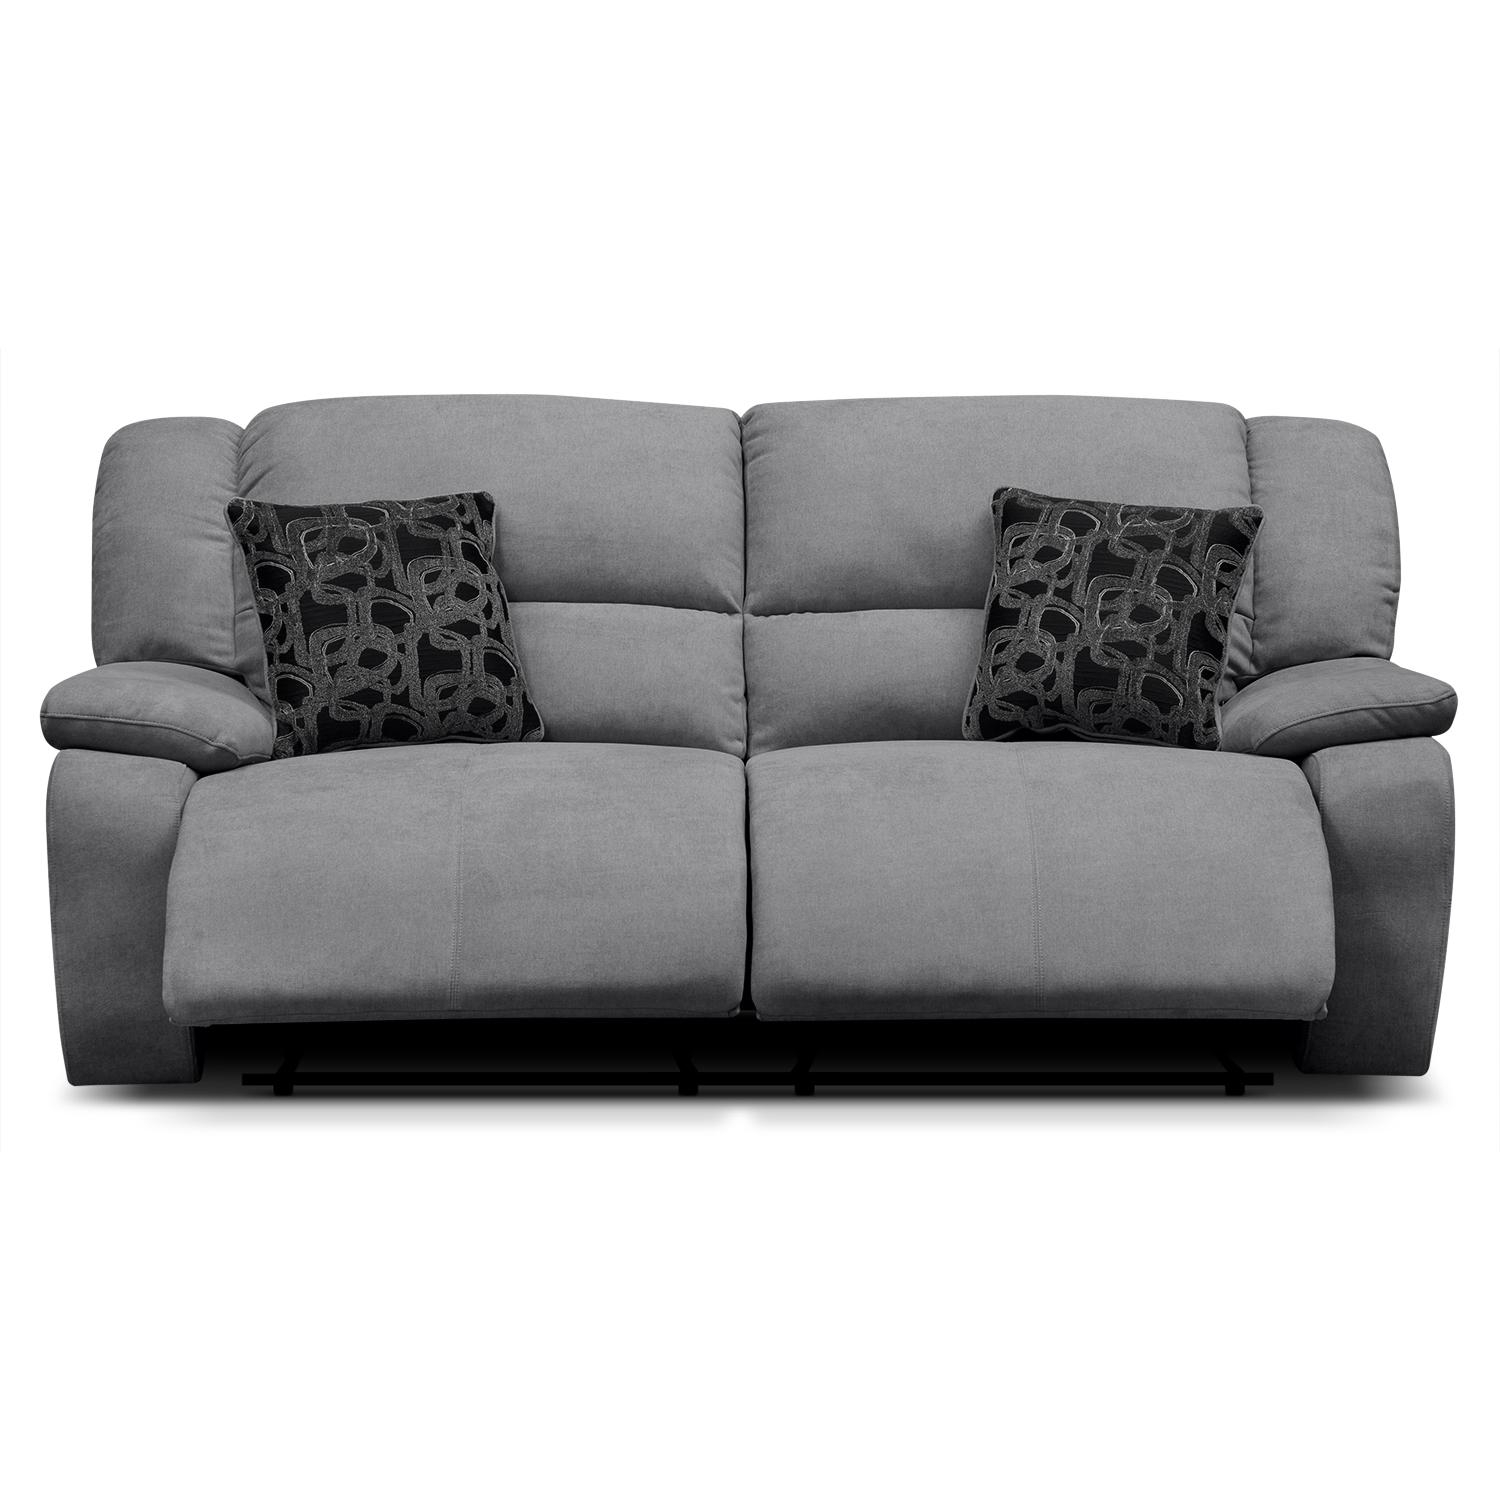 Sofas Center : Ashbourne Two Seater Recliner Sofa Hsl Sofa Ascot Throughout 2 Seat Recliner Sofas (View 18 of 20)